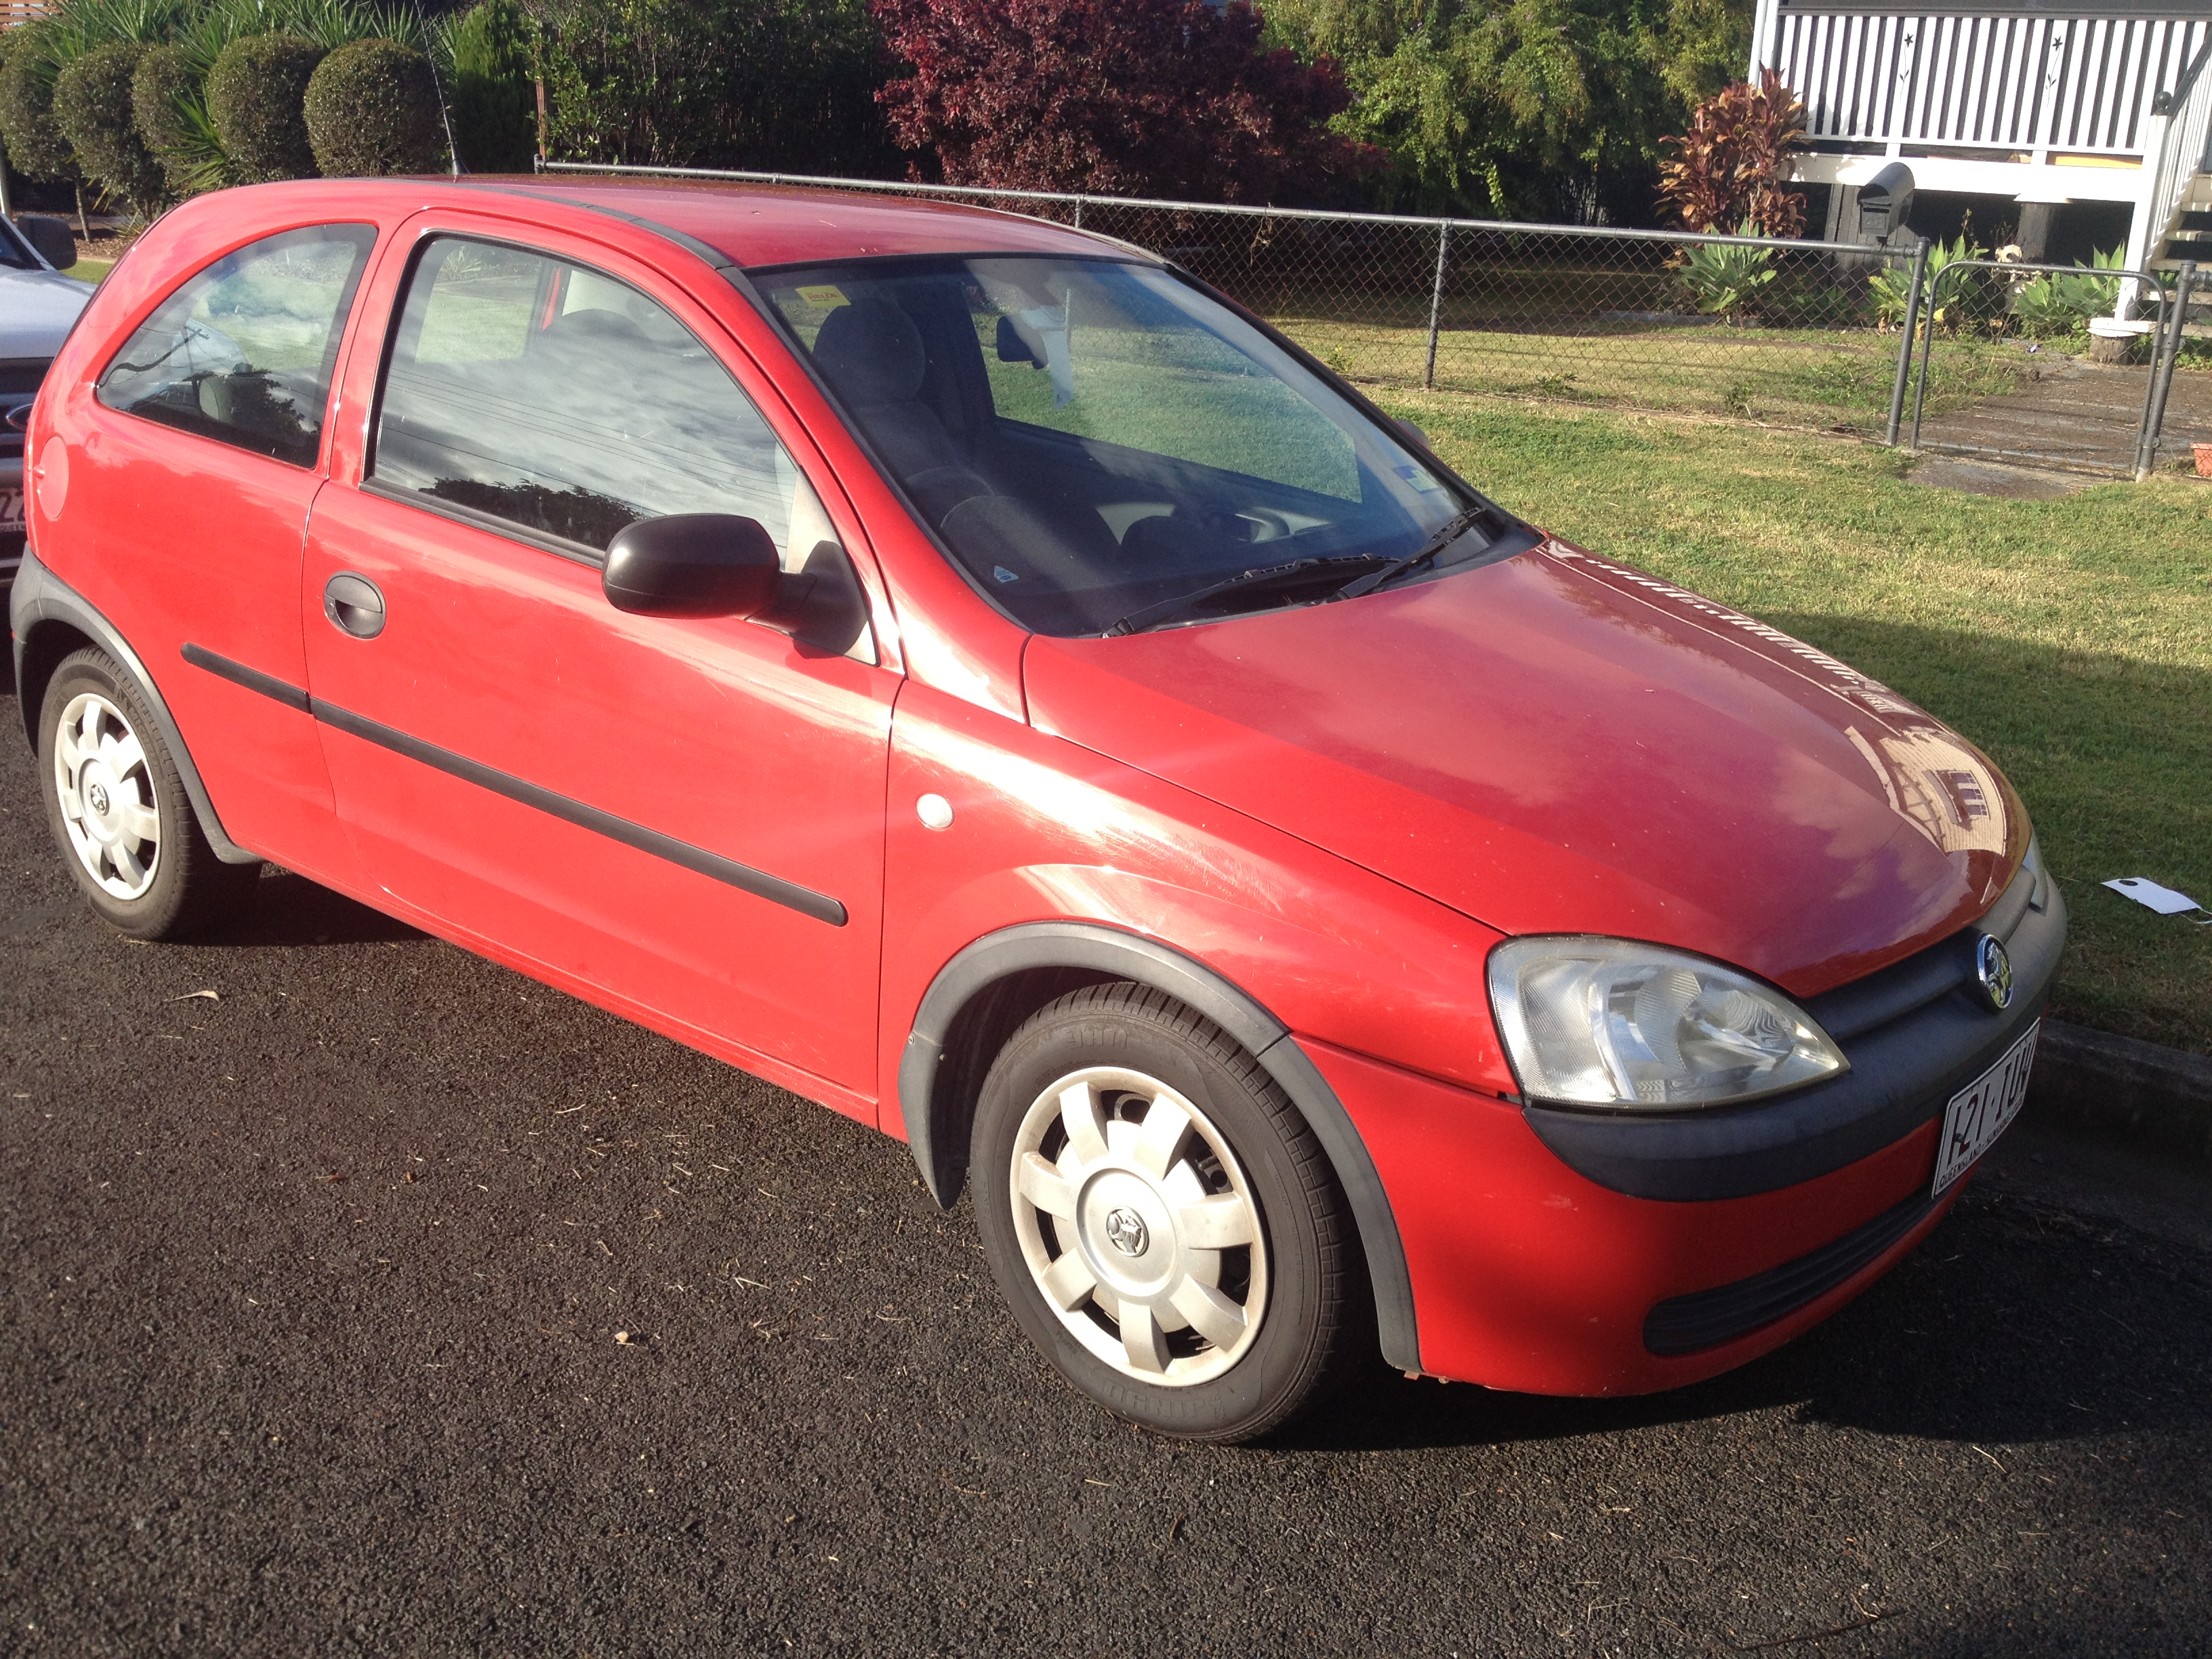 2001 Holden Barina Xc For Sale Qld Ipswich